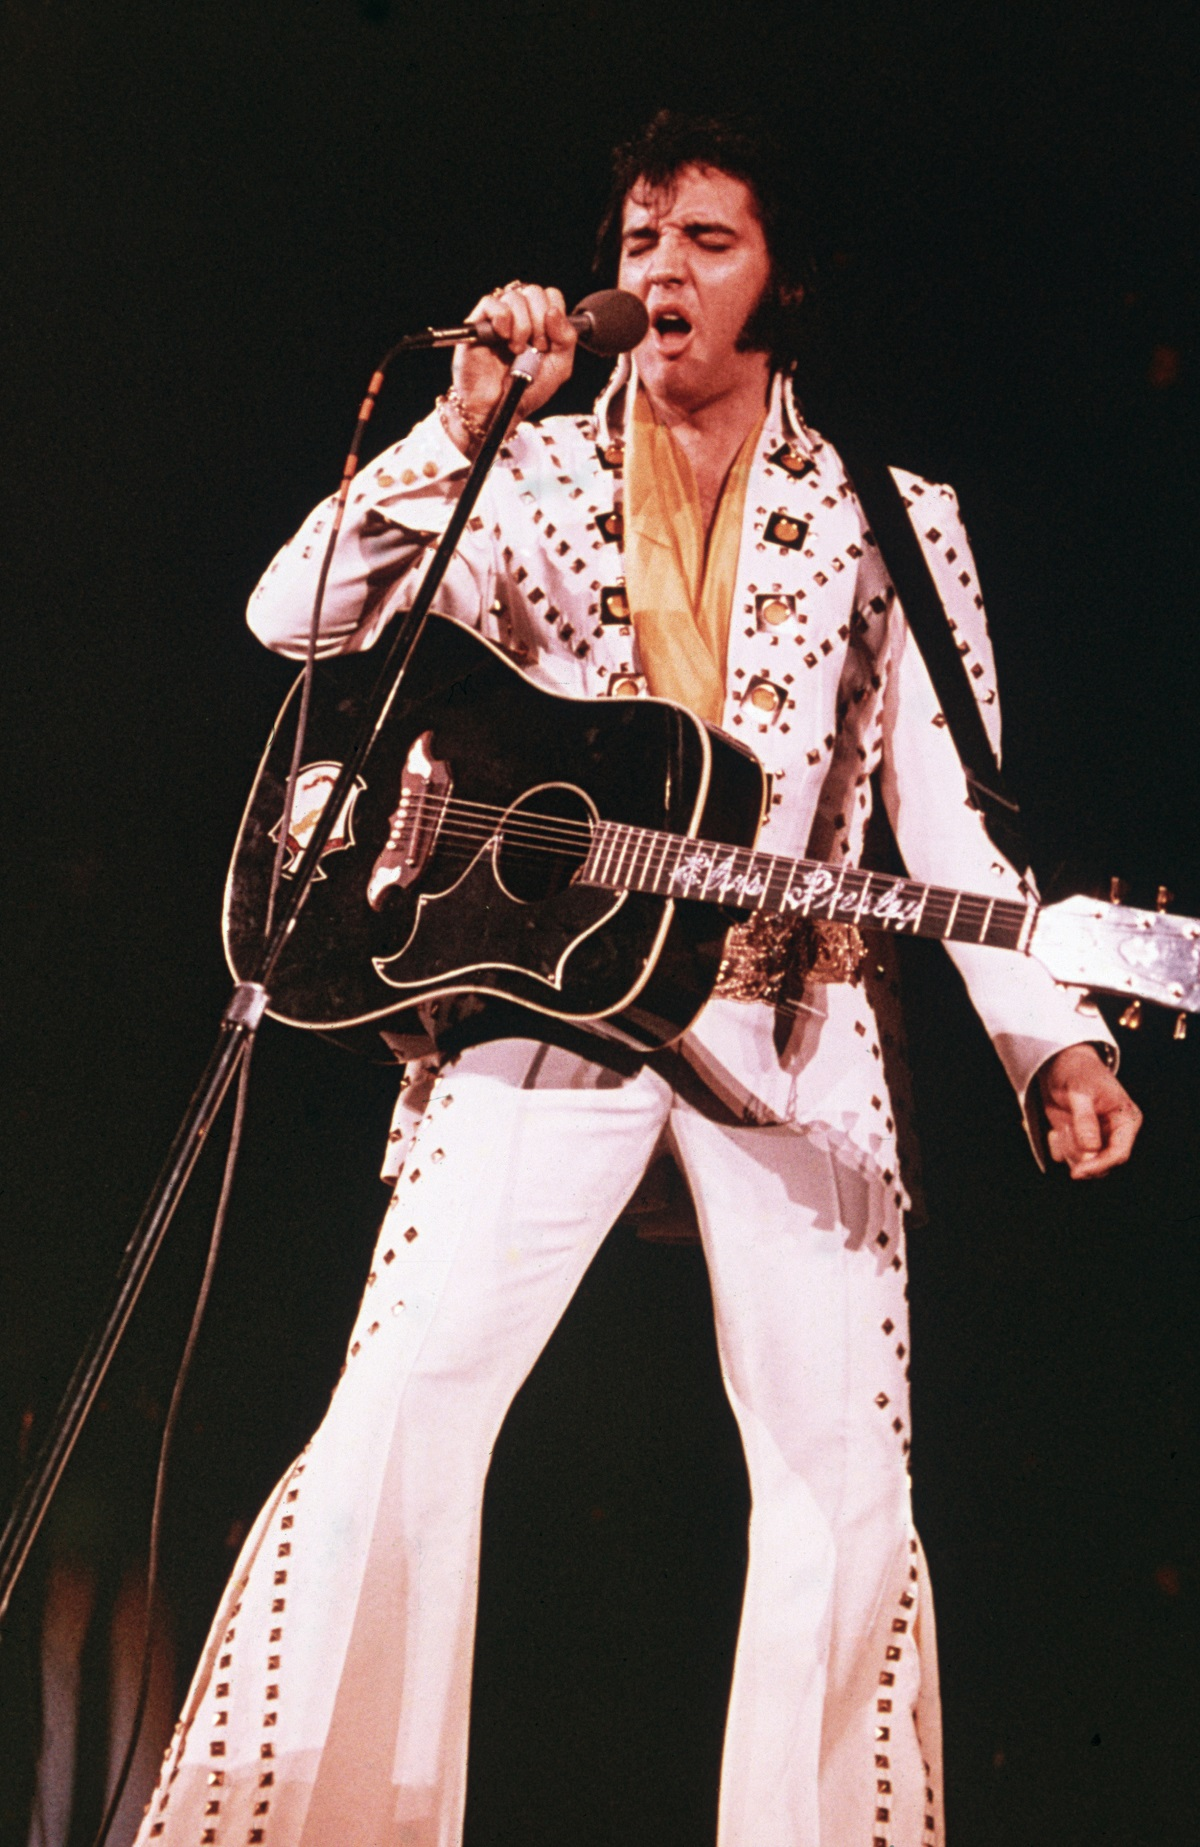 Elvis Presley performing in 1975